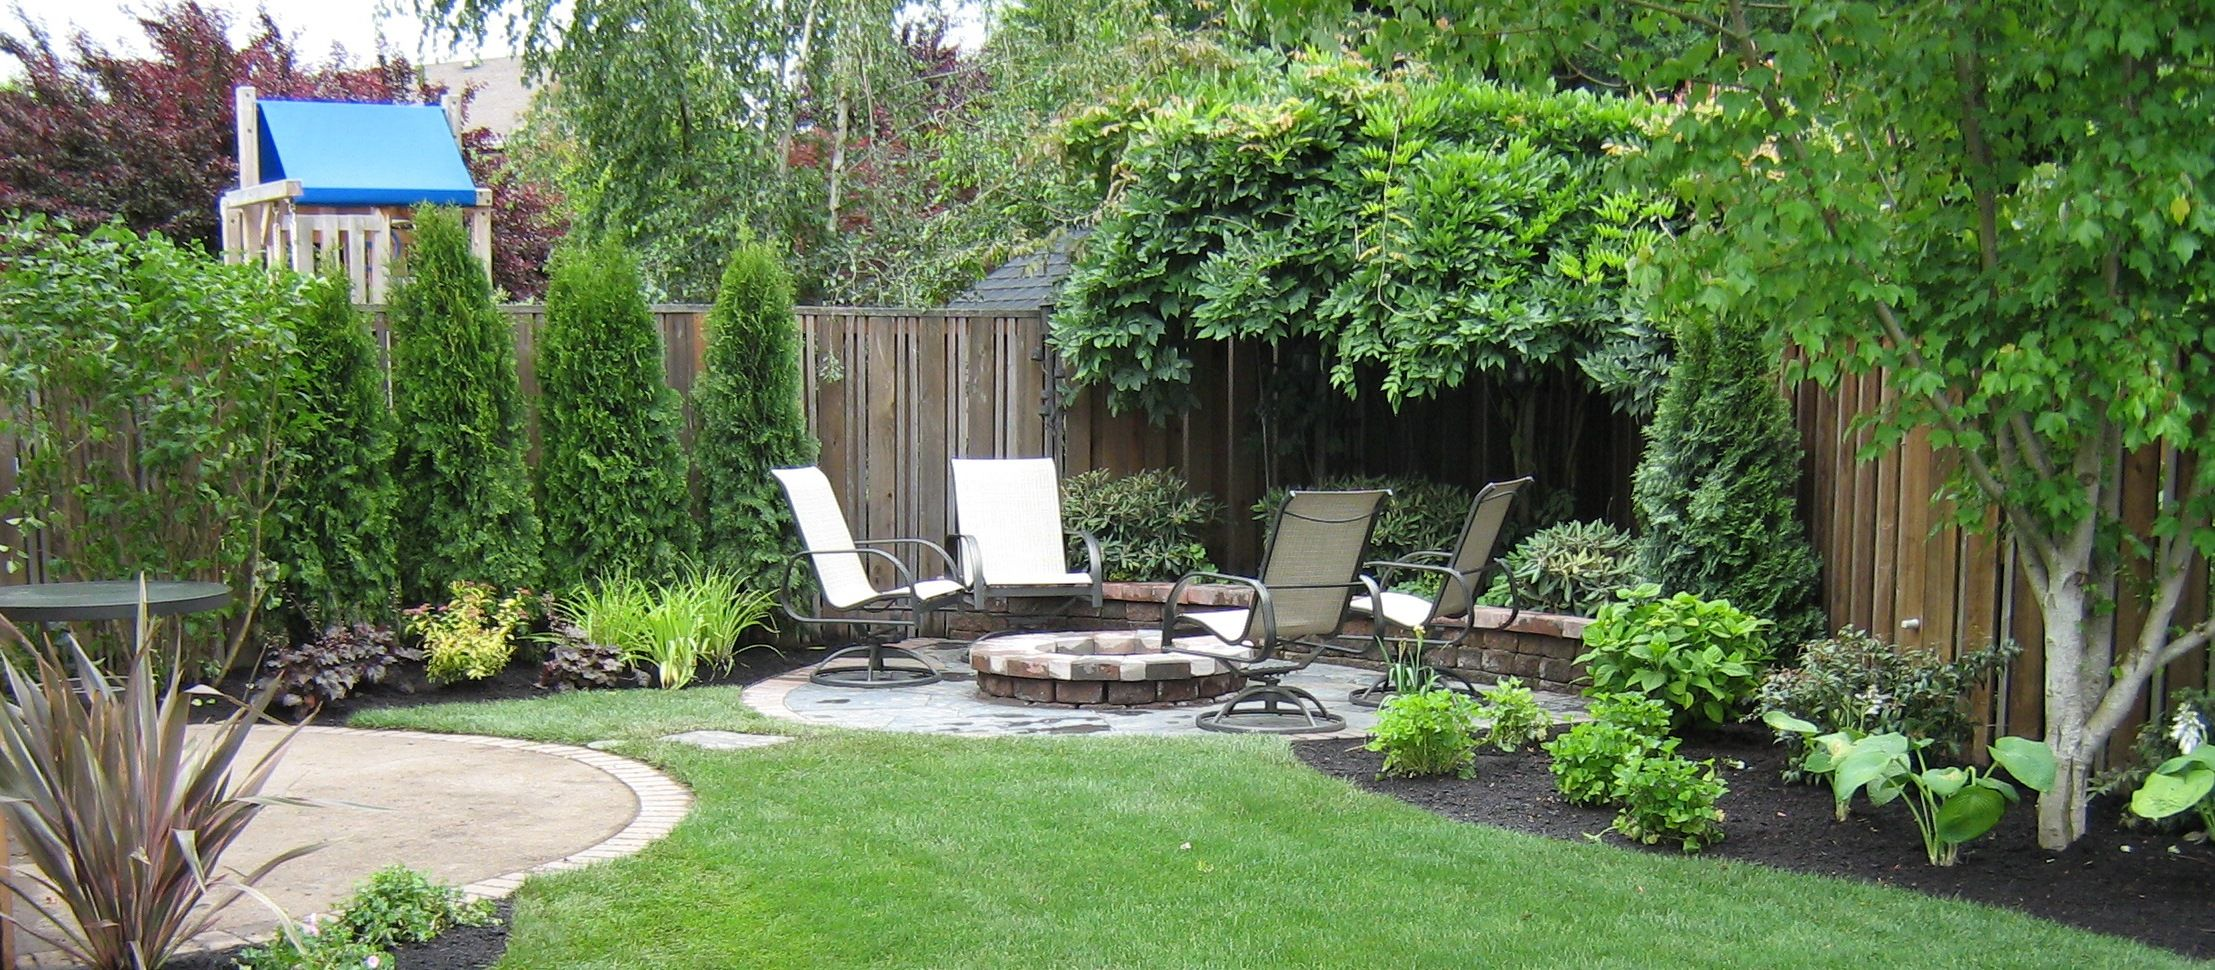 Small backyard landscaping ideas photos garden design for Backyard garden design